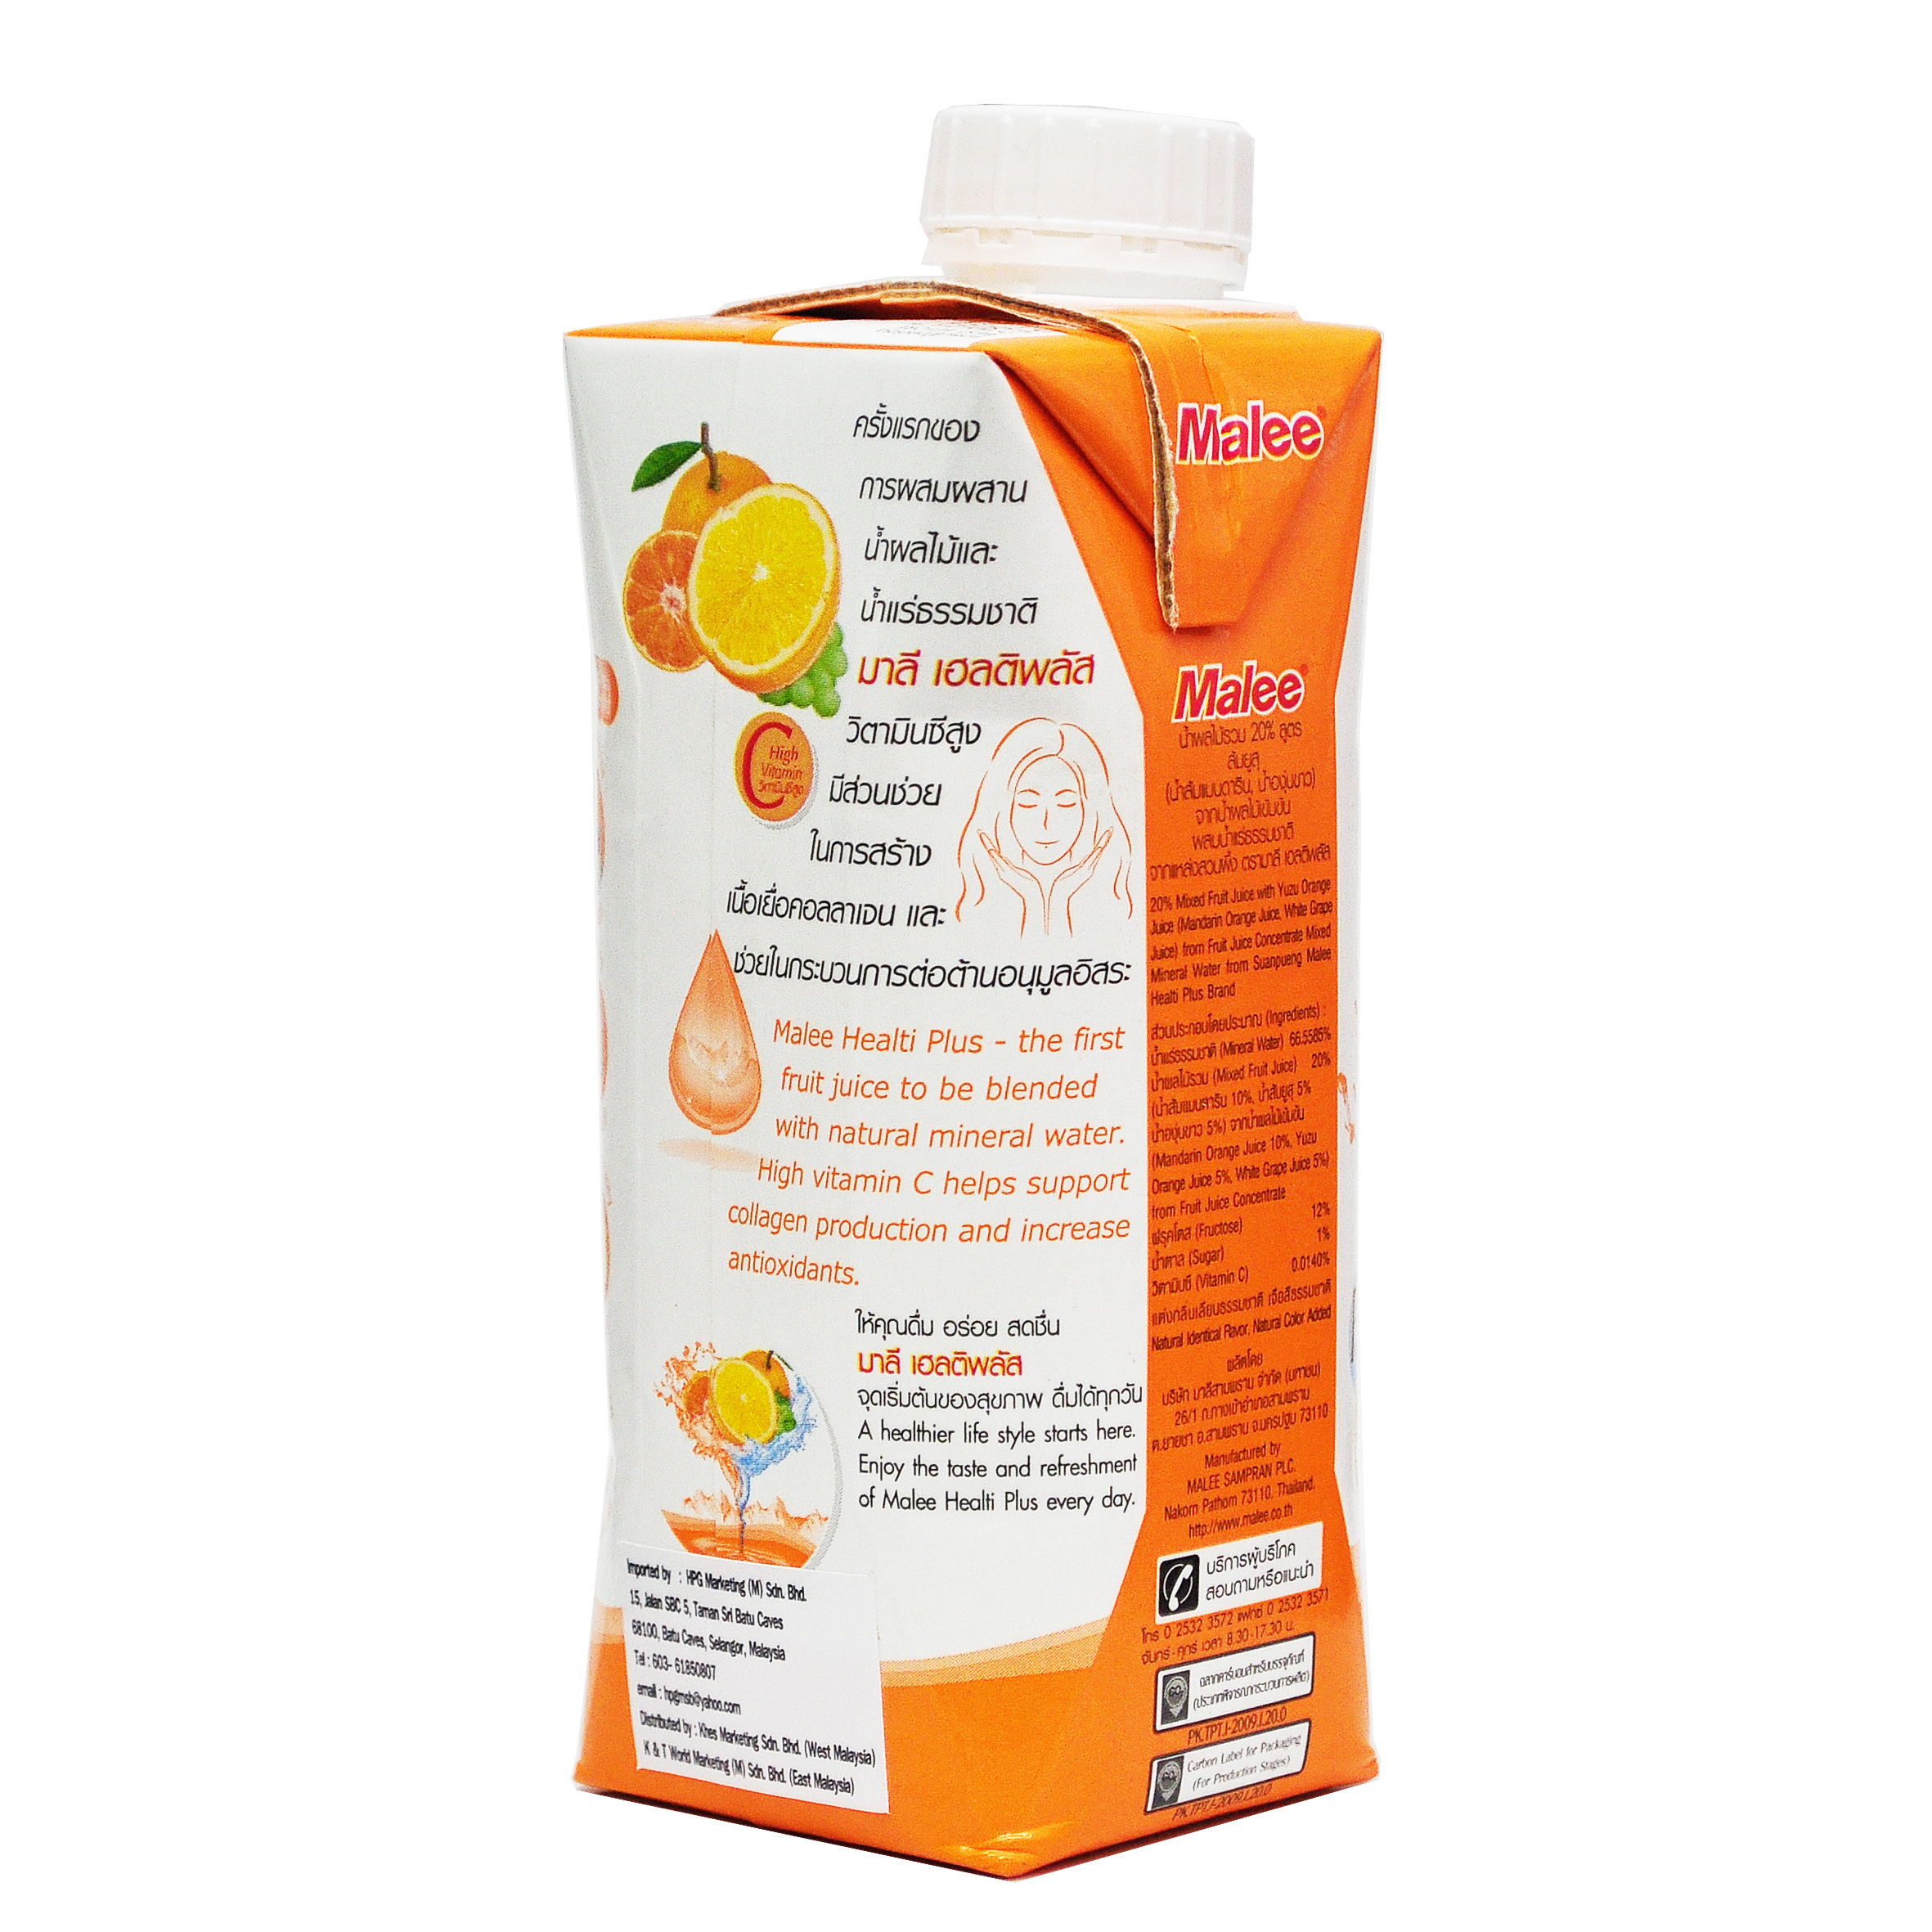 Malee Yuzu Orange Formula with Fruit Juice and Mineral Water Back Side.jpg